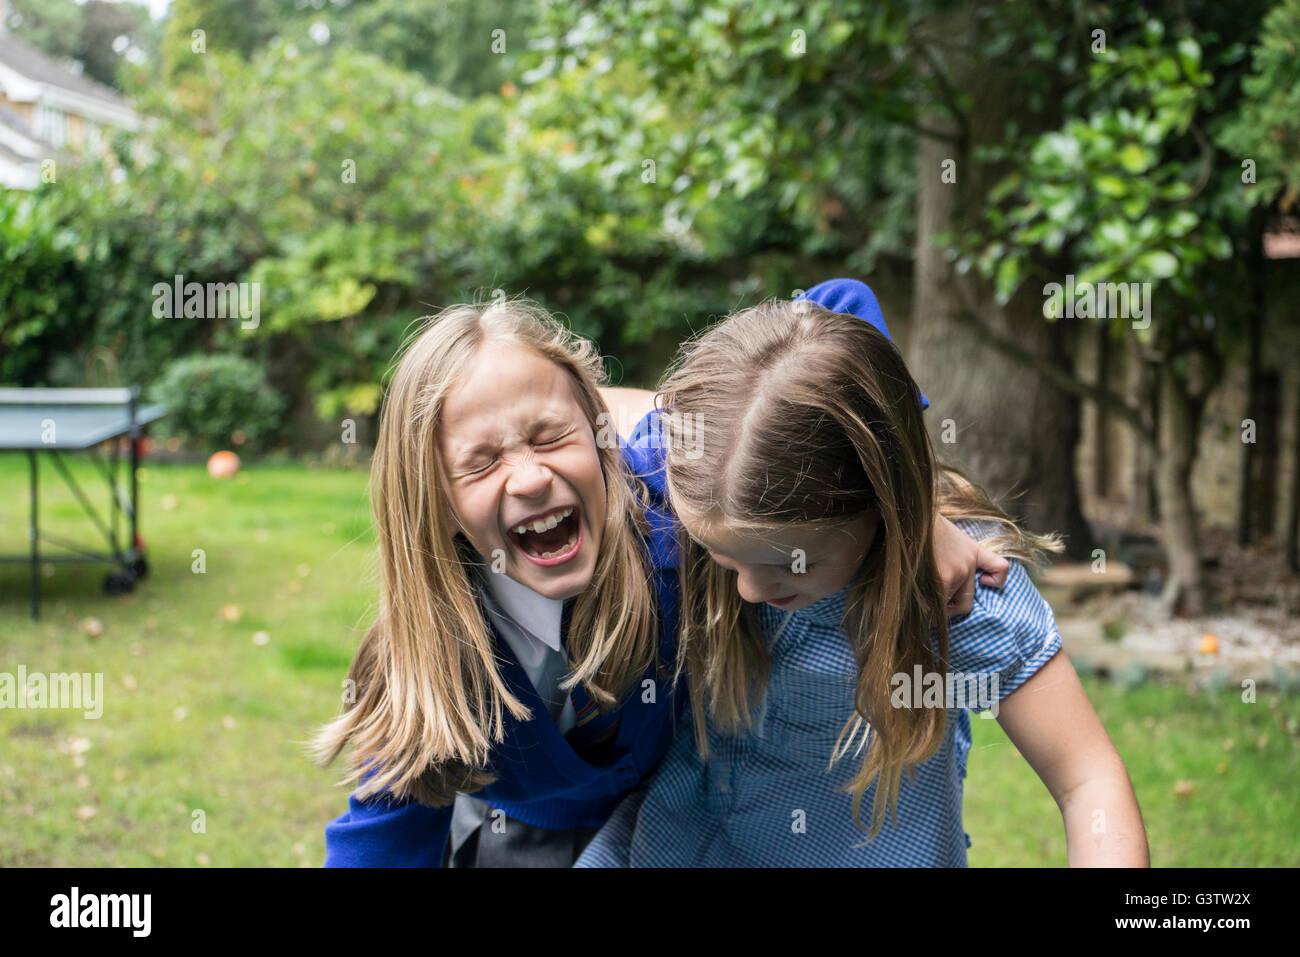 Two ten year old girls in school uniform laughing together outside. - Stock Image